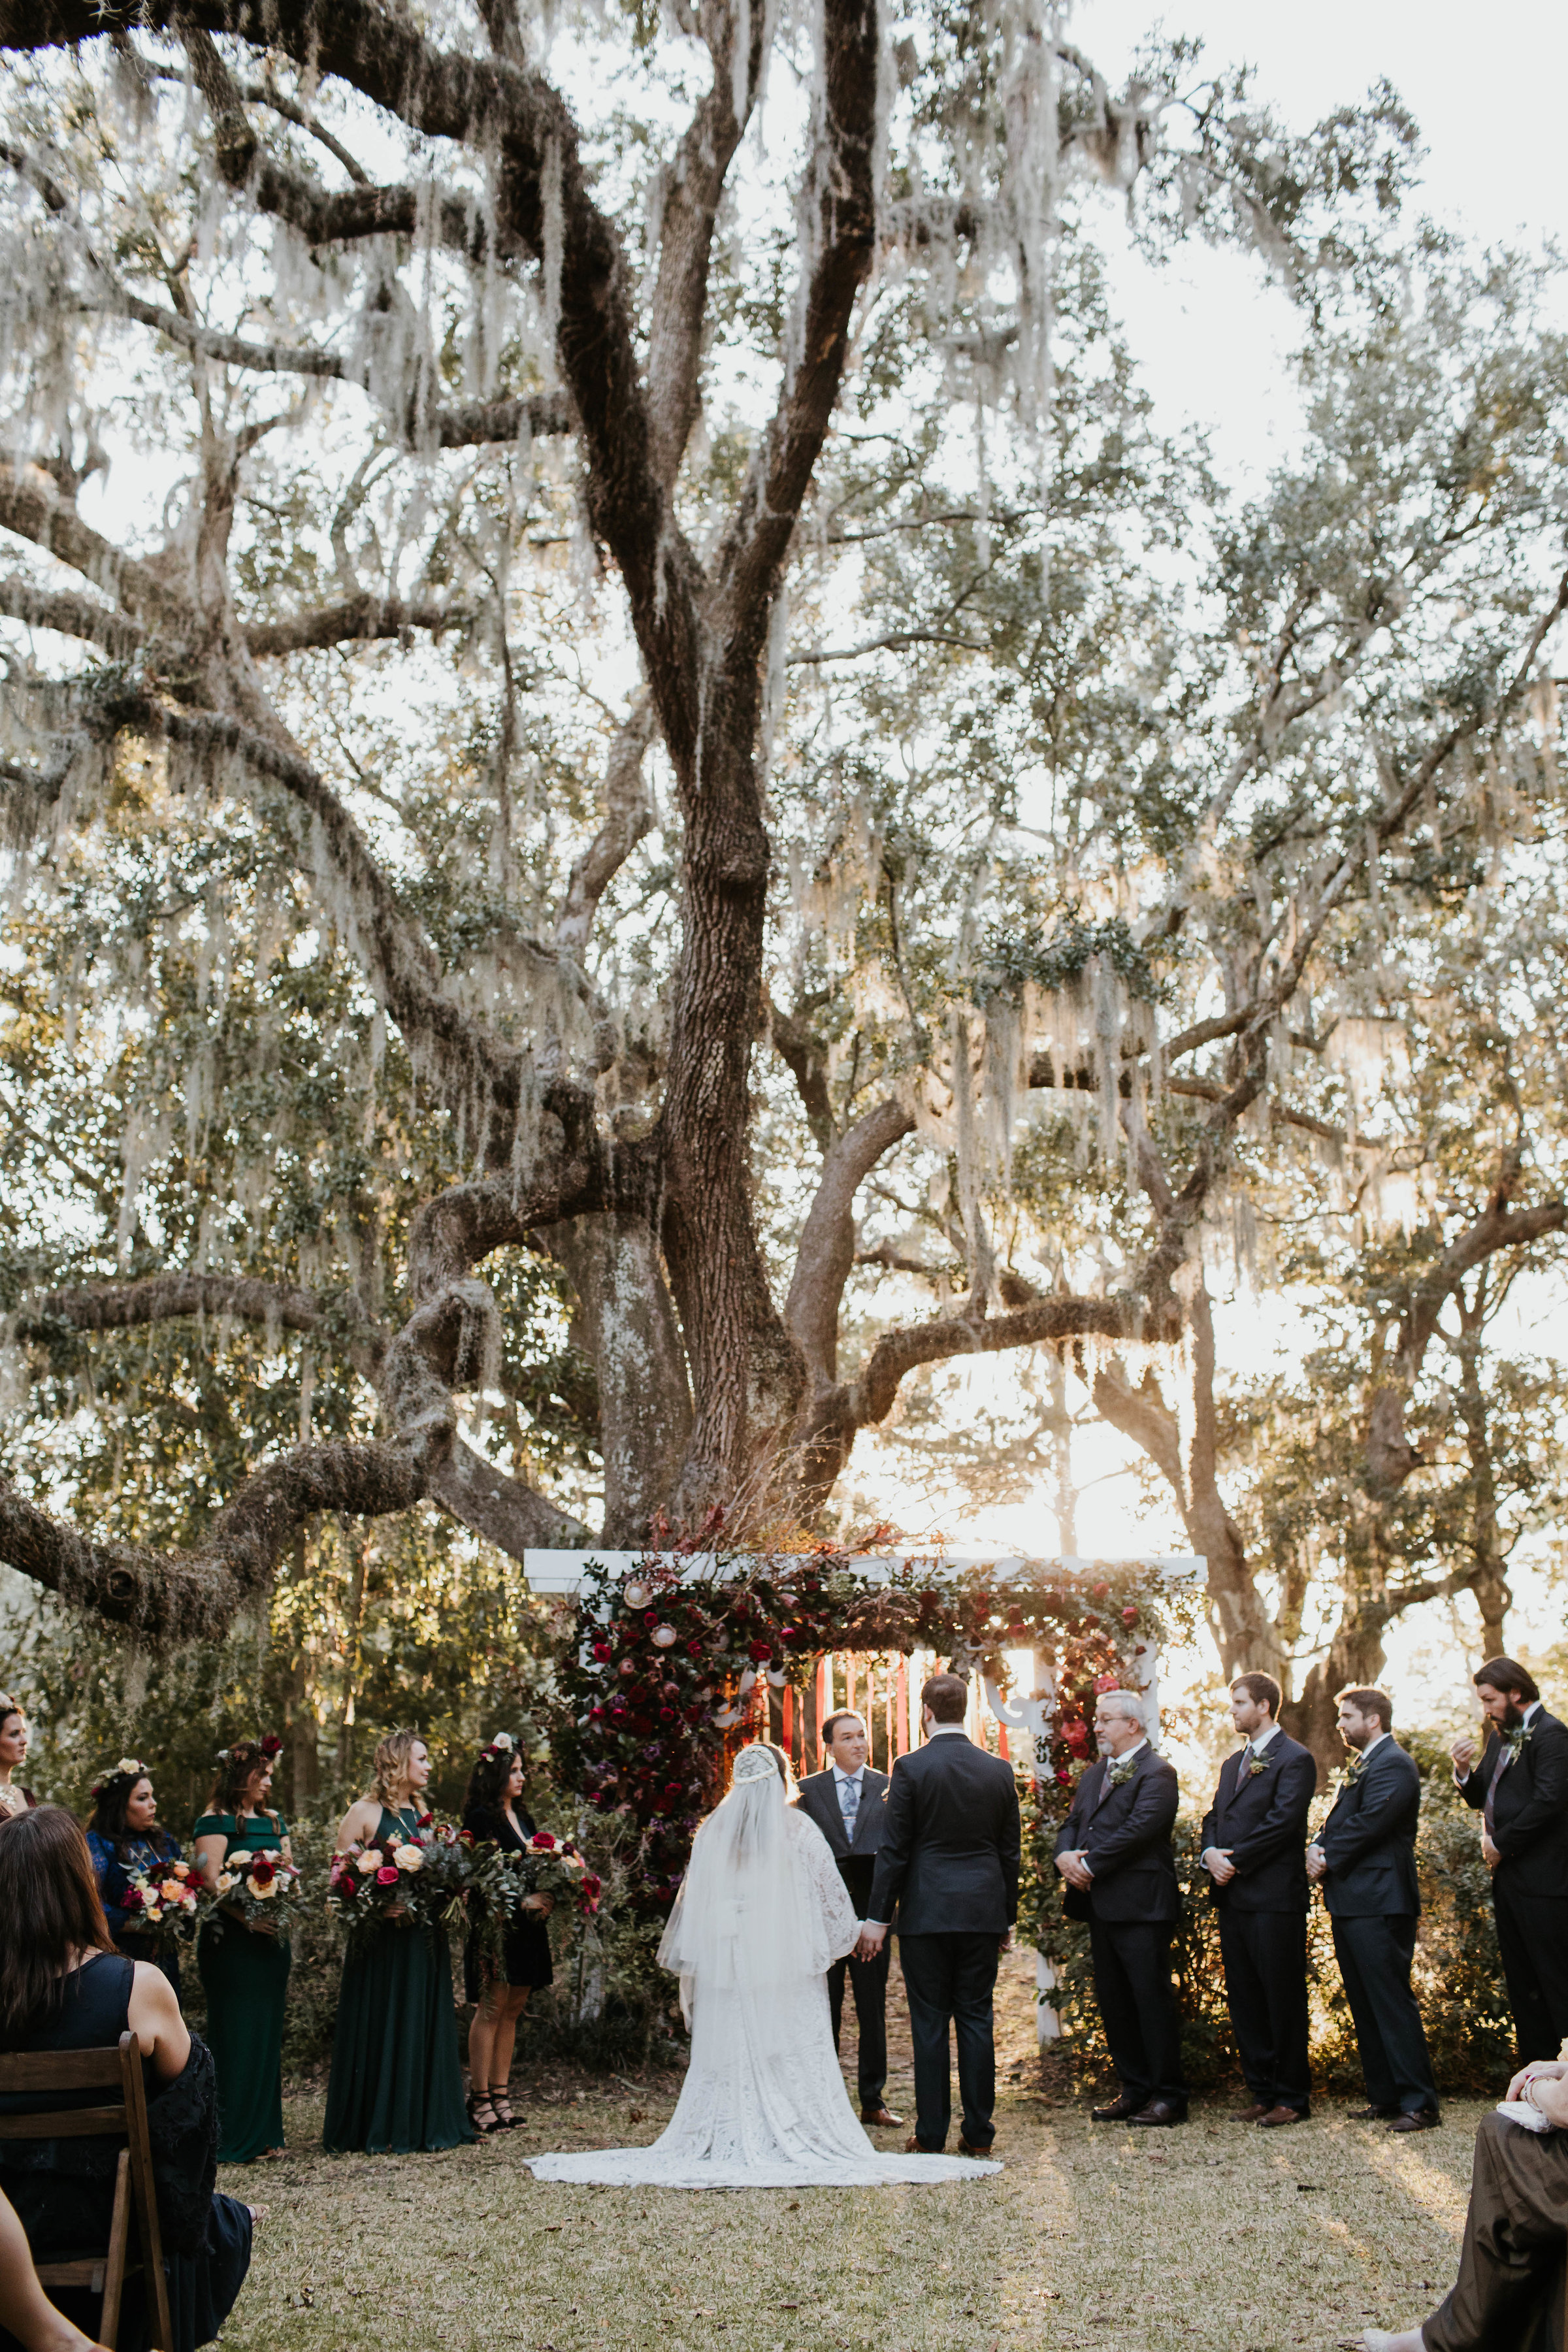 Charleston SC Wedding Ceremony Locations  ll  Wedding Venues in Charleston SC  ll  Premier Guide for Charleston weddings in The Lowcountry.